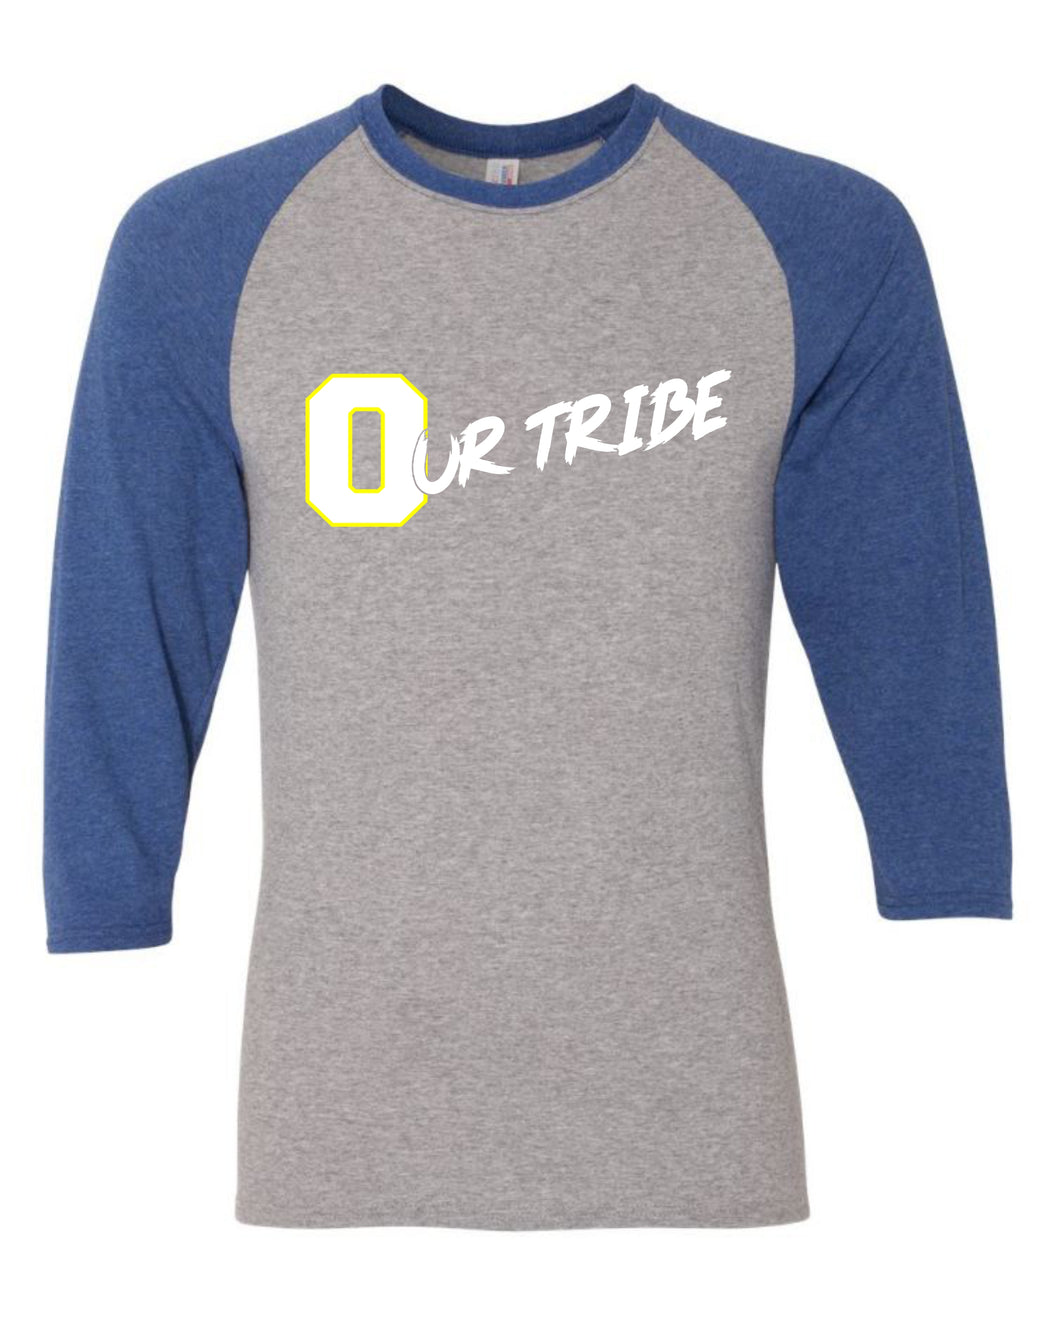 Our Tribe Gray and White Raglan Unisex